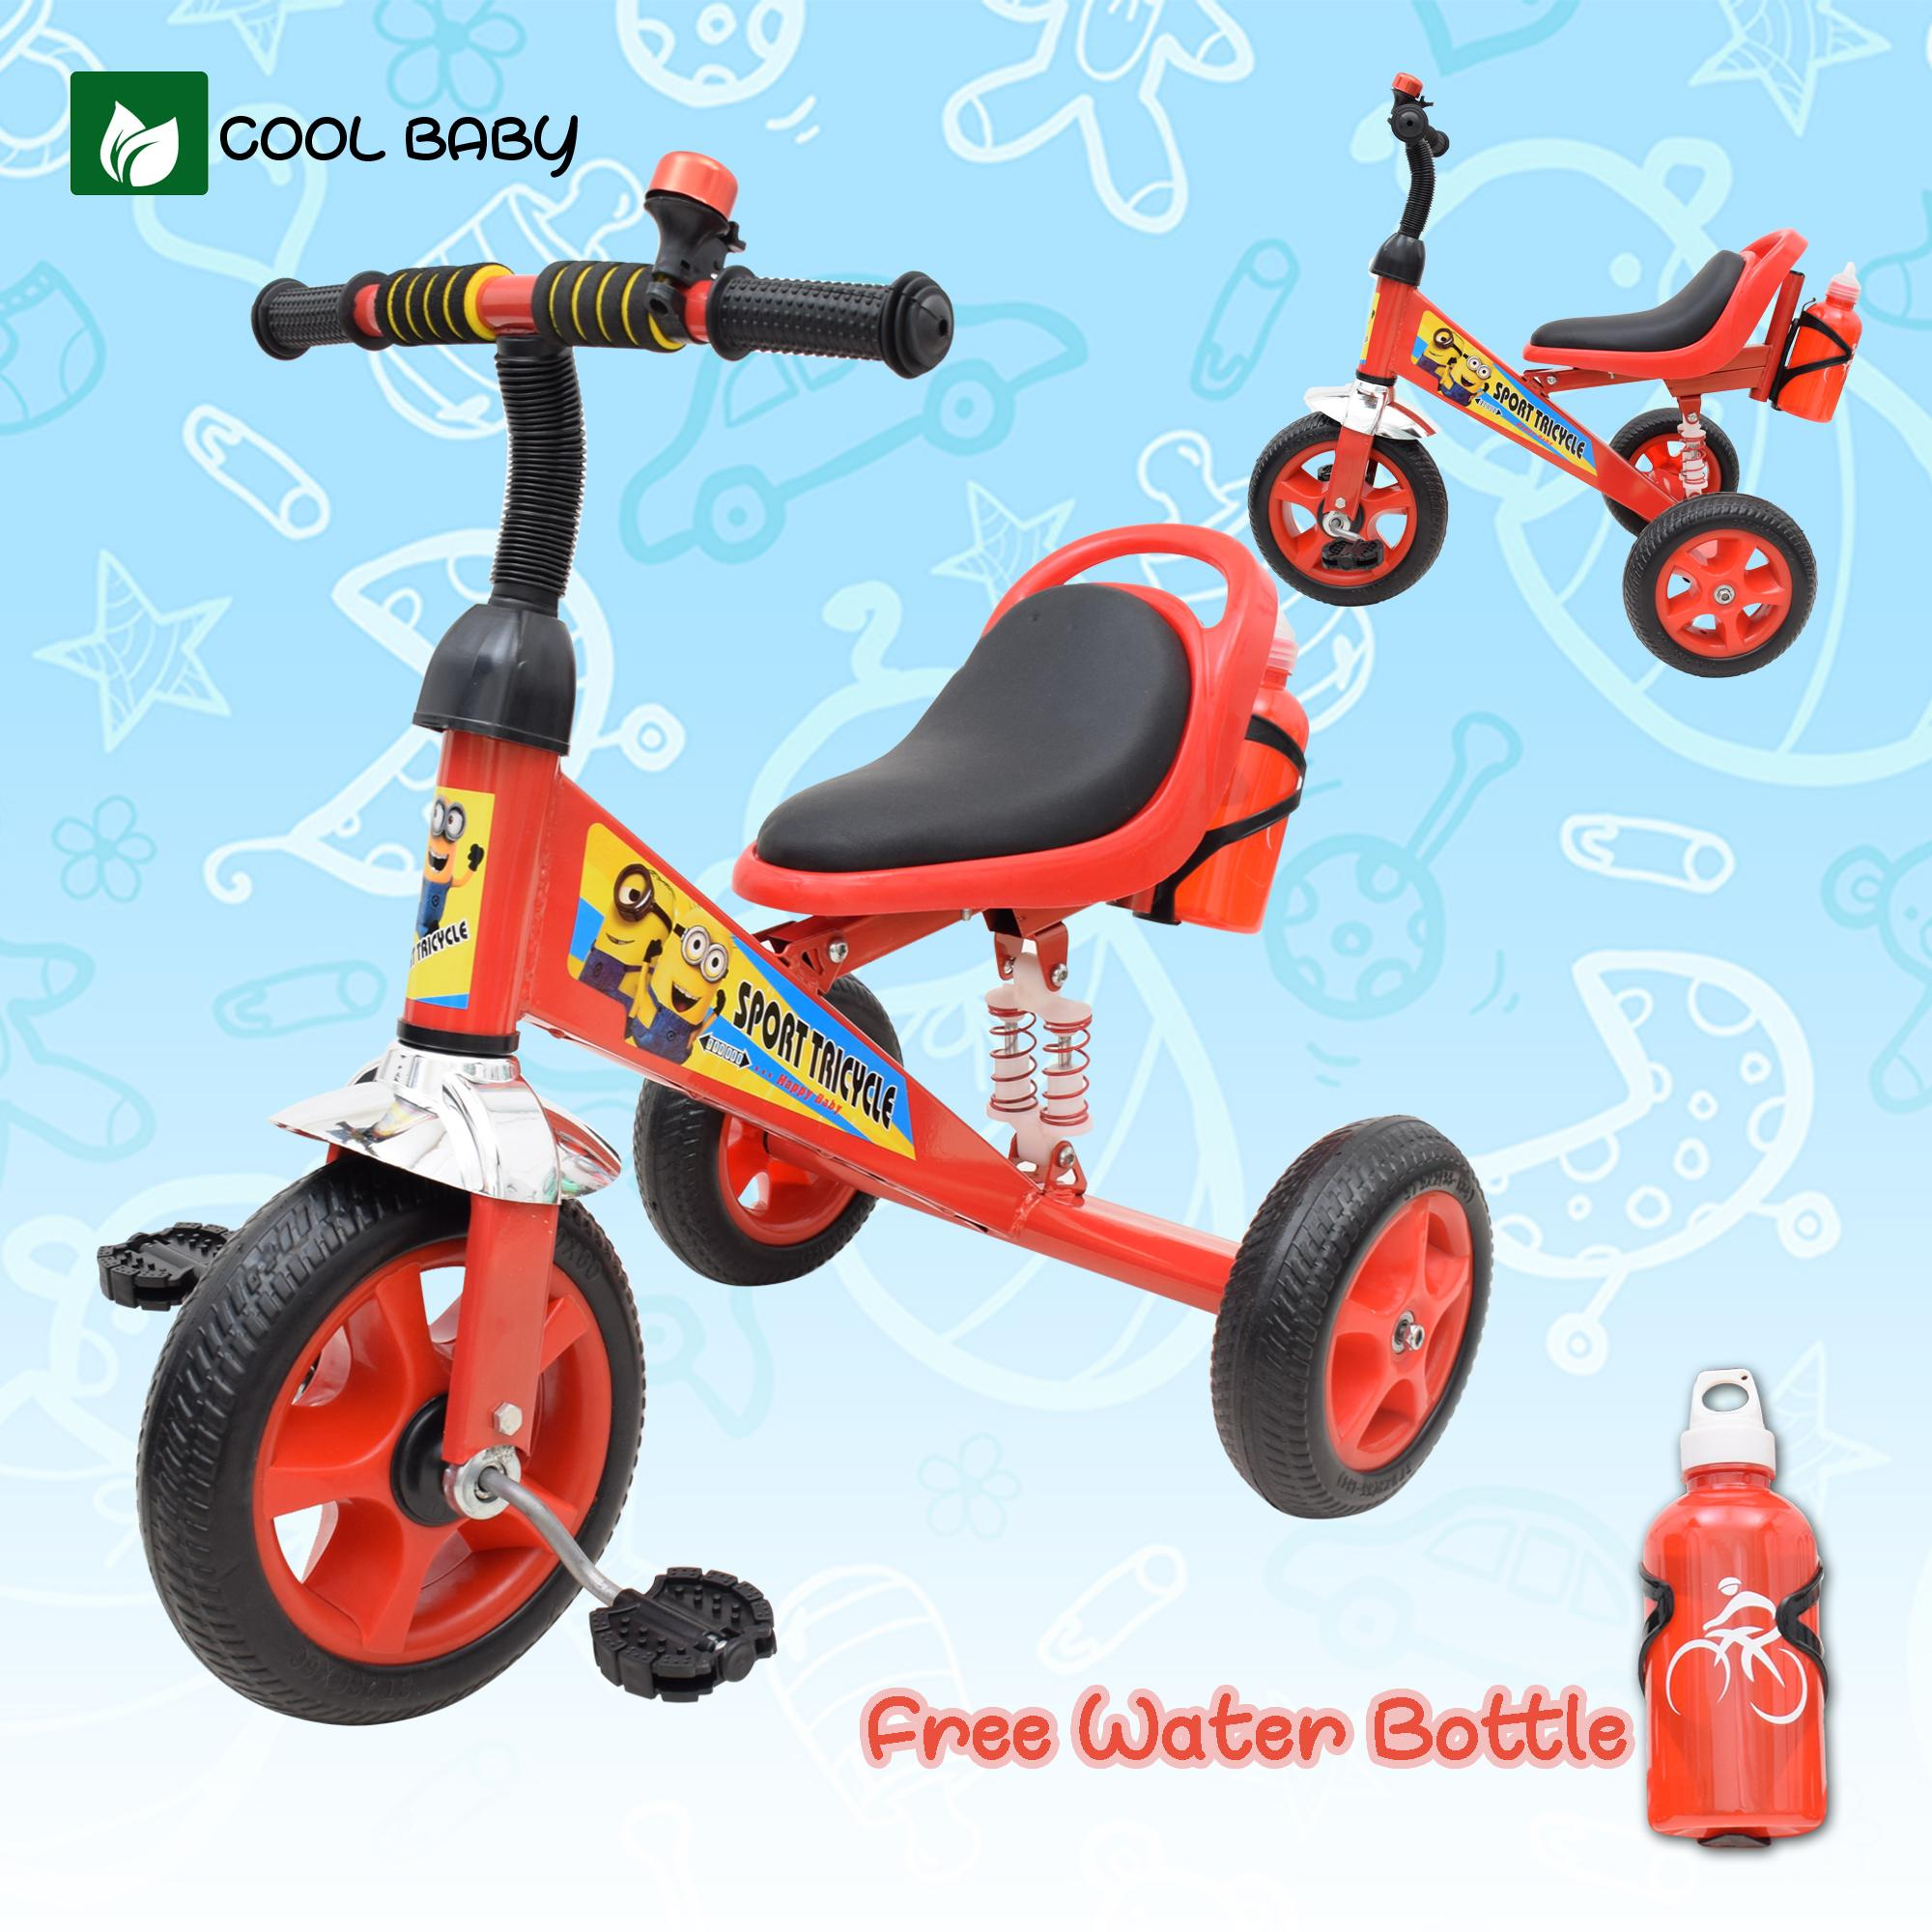 Kids Bikes for sale - Bicycles for Kids Online Deals & Prices in